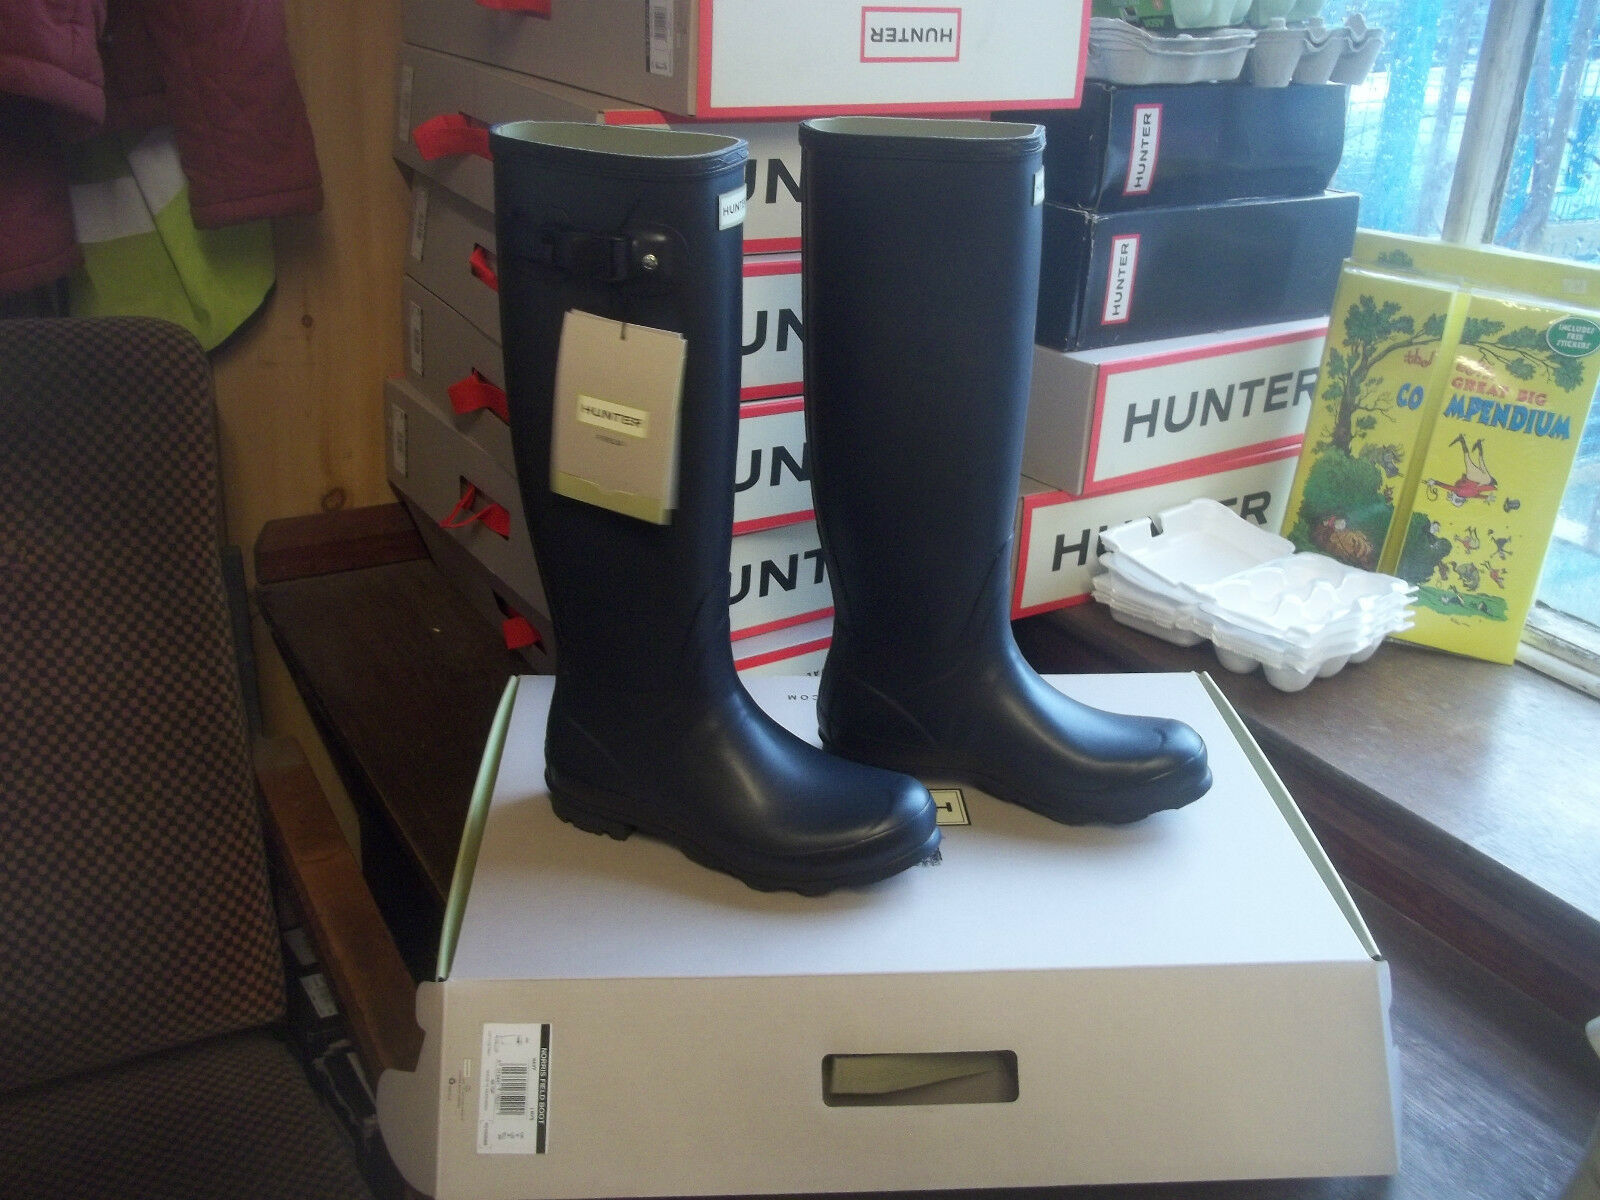 NAVY BLUE NORRIS HUNTER WELLINGTONS  IN HALIFAX SIZE 7  LADIES. WOMENS TALL